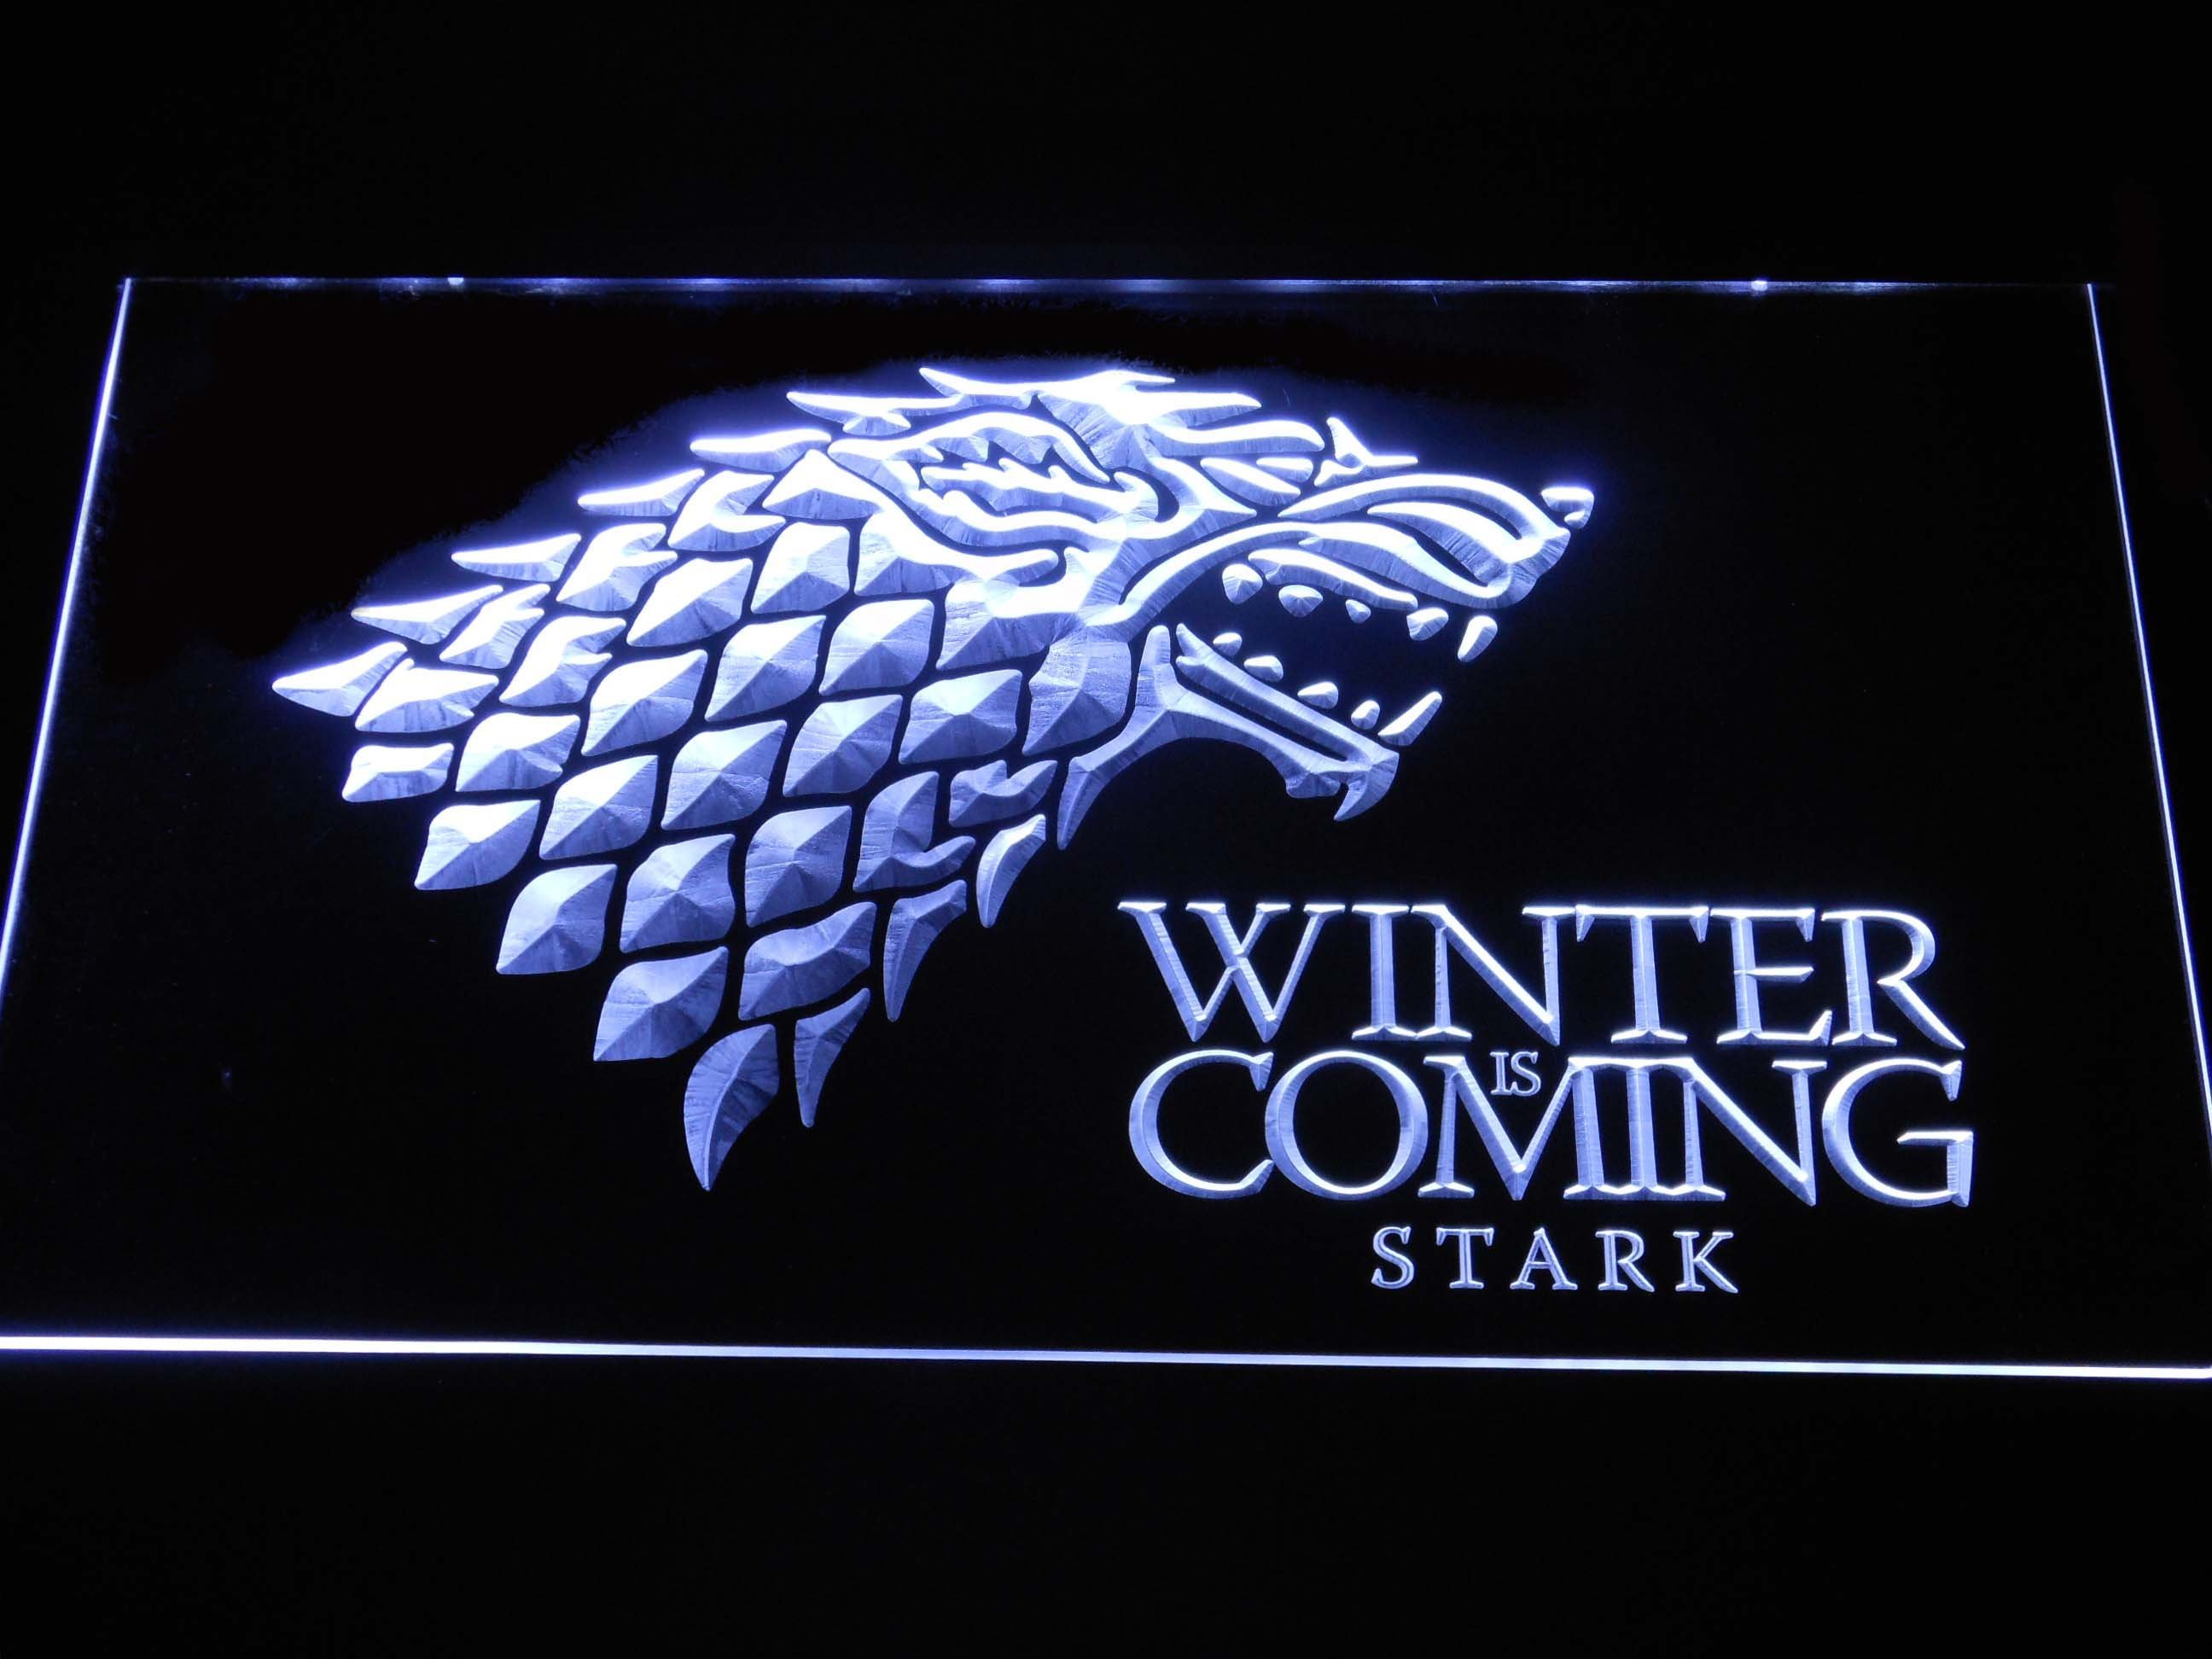 Game Of Thrones Stark Winter Is Coming Led Neon Sign In 2019